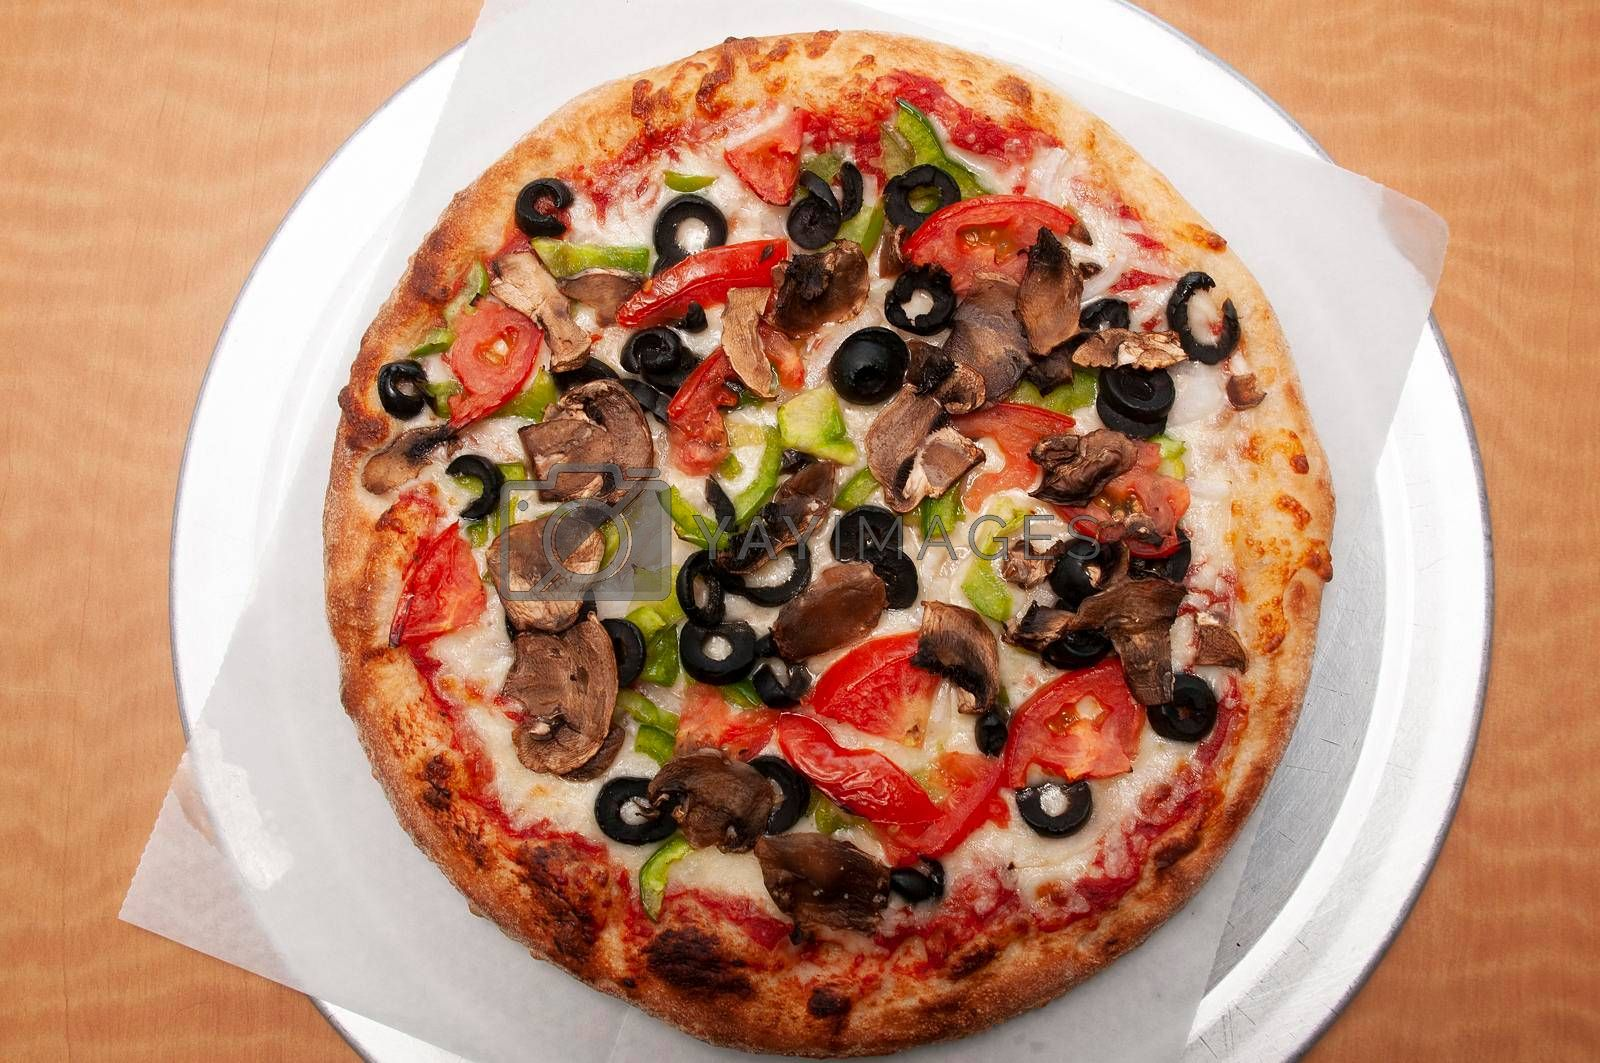 Delicious tomato sauce cheese covered hot and tasty vegetarian pizza pie